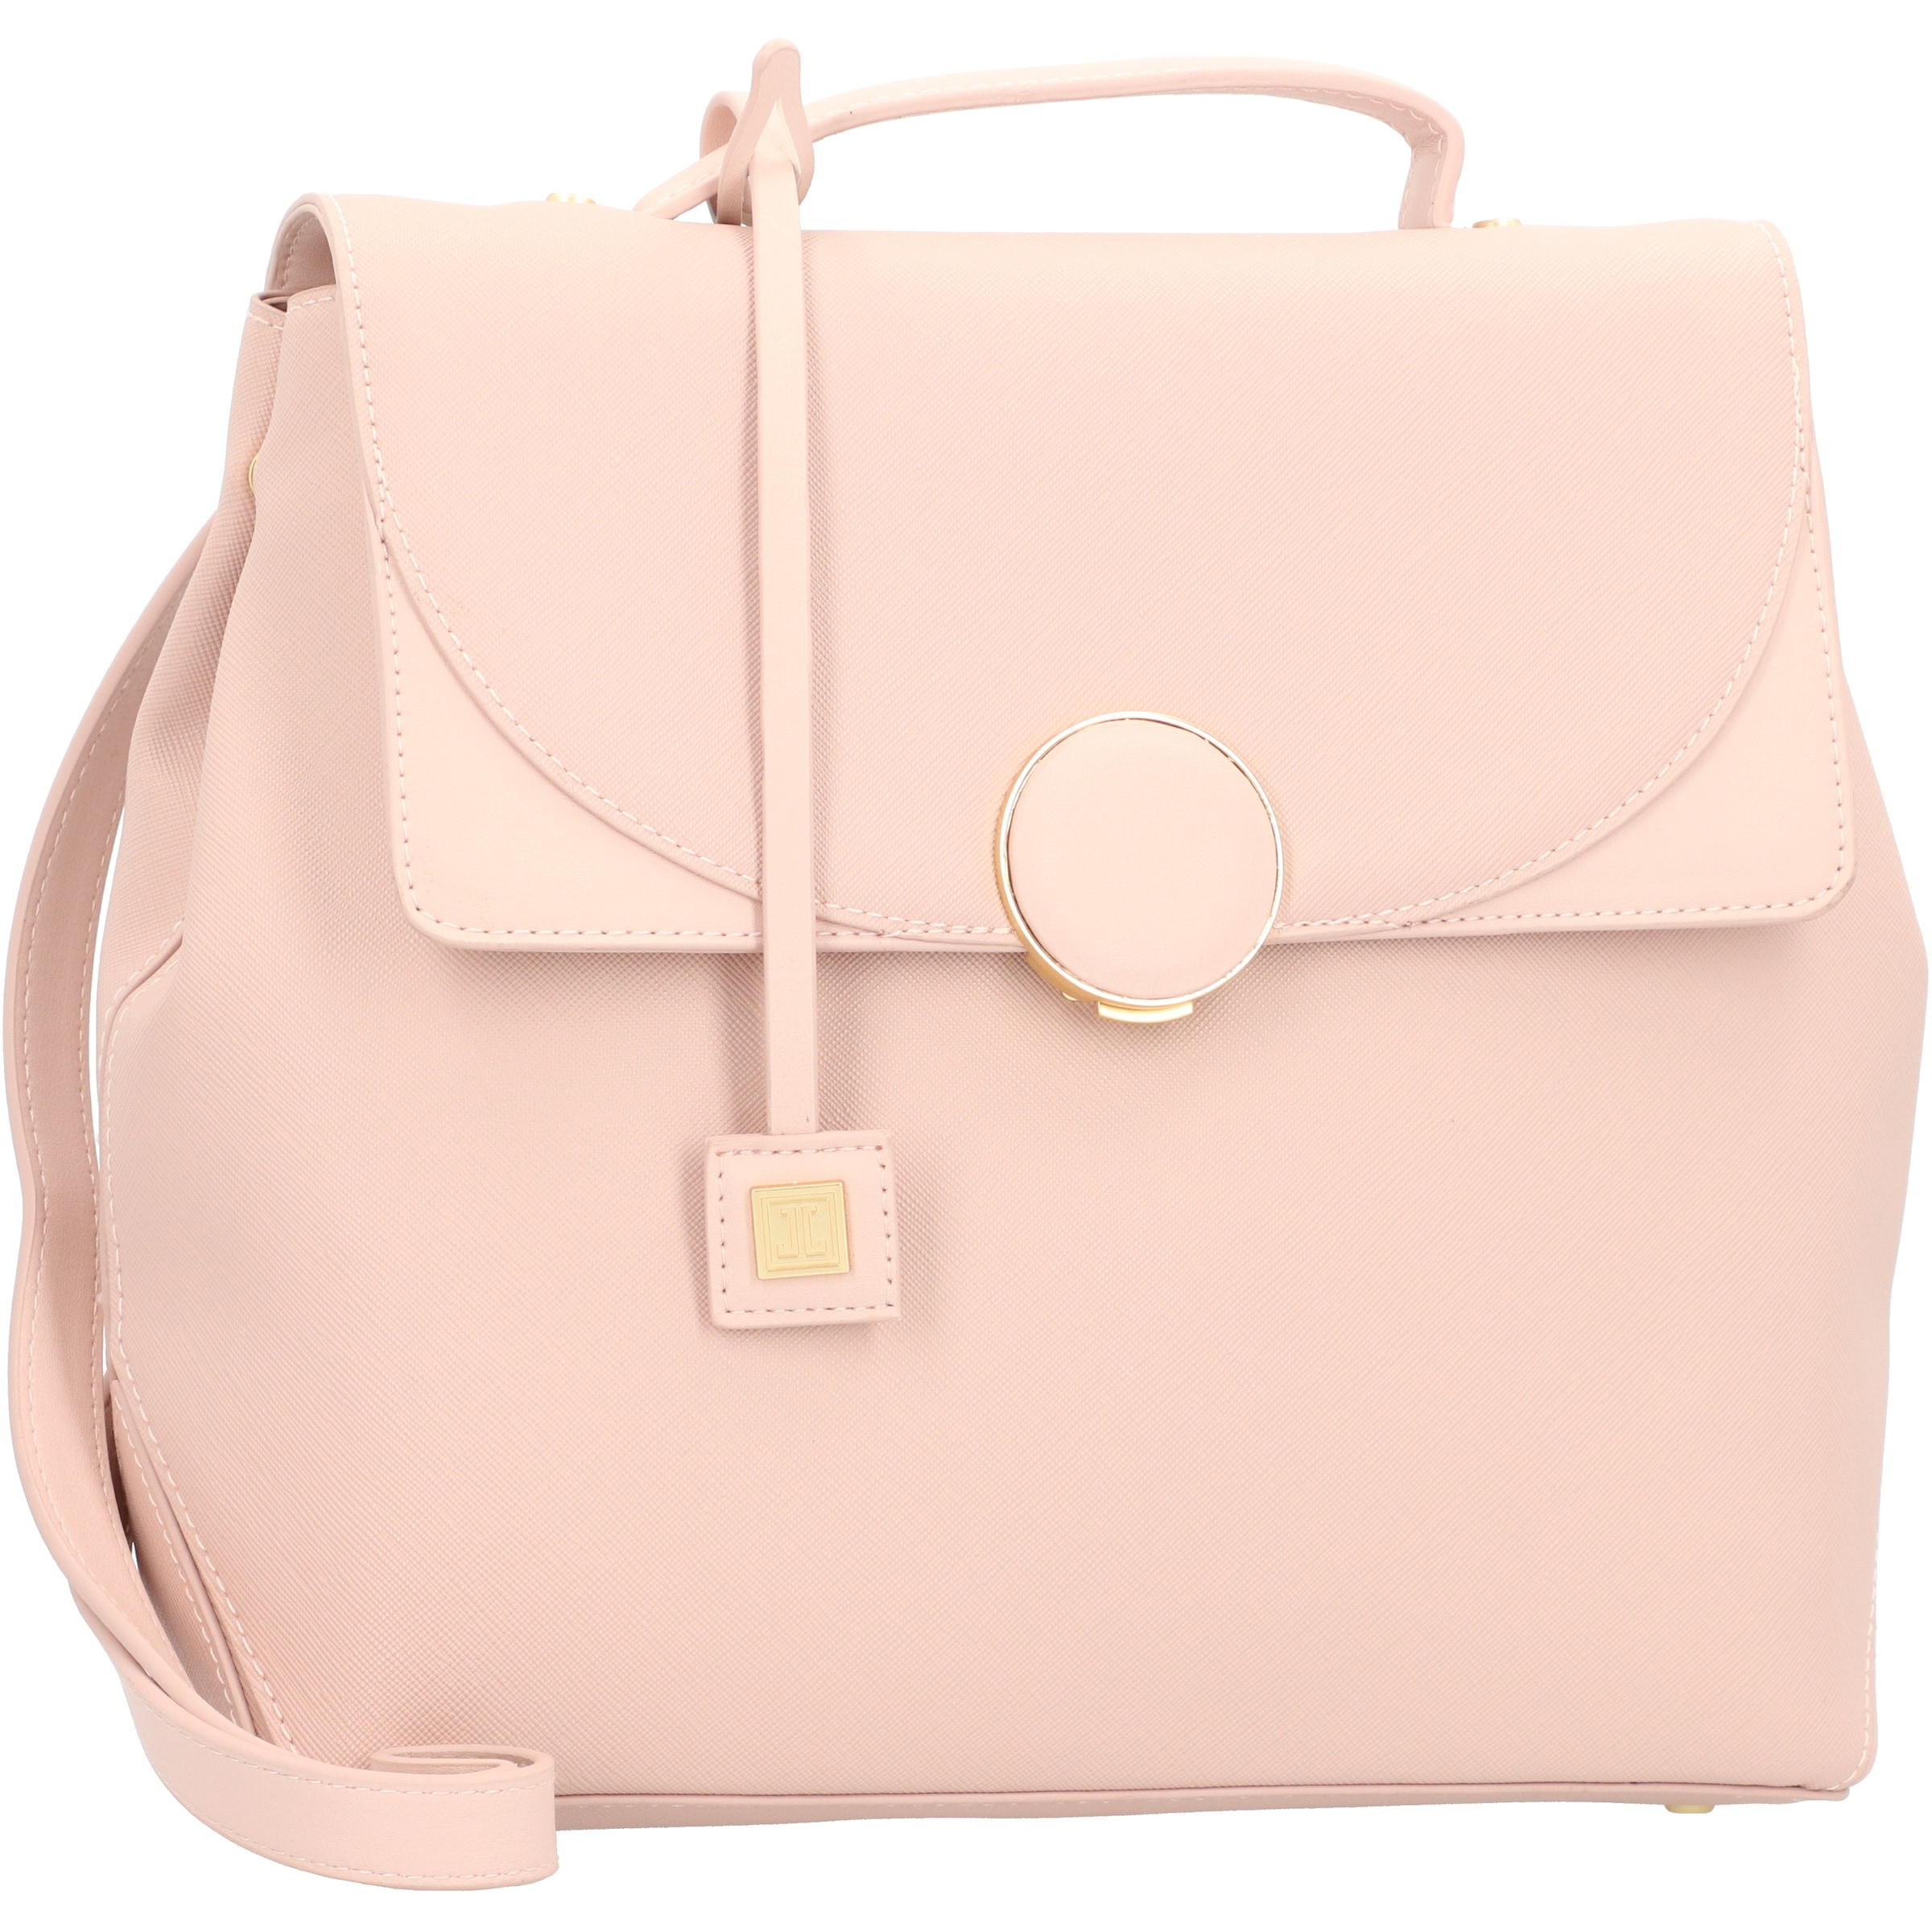 Bag' Jette Ancienne 'love Sacs Main À En Rose My 8nywOvmN0